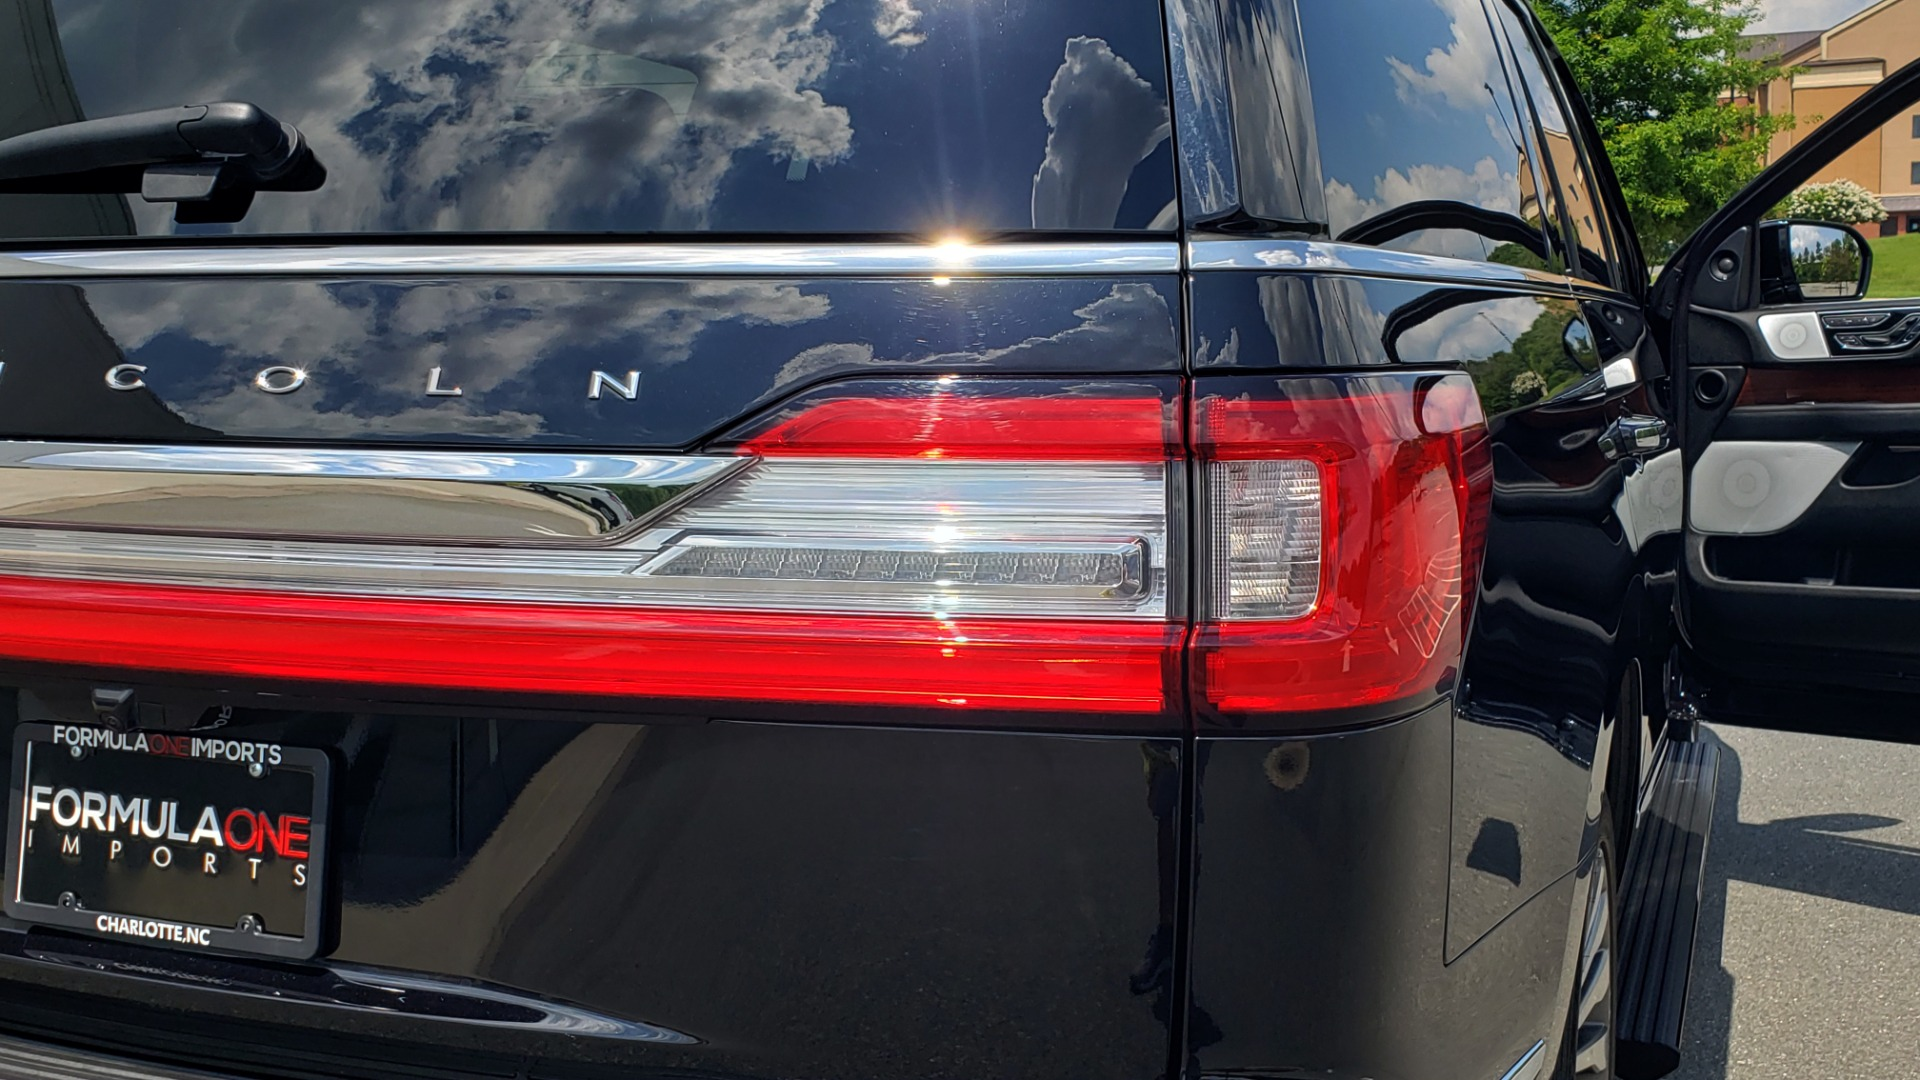 Used 2019 Lincoln NAVIGATOR RESERVE 4X4 / NAV / PANO-ROOF / REVEL ULTIMA AUDIO / 3-ROW / REARVIEW for sale $74,795 at Formula Imports in Charlotte NC 28227 35